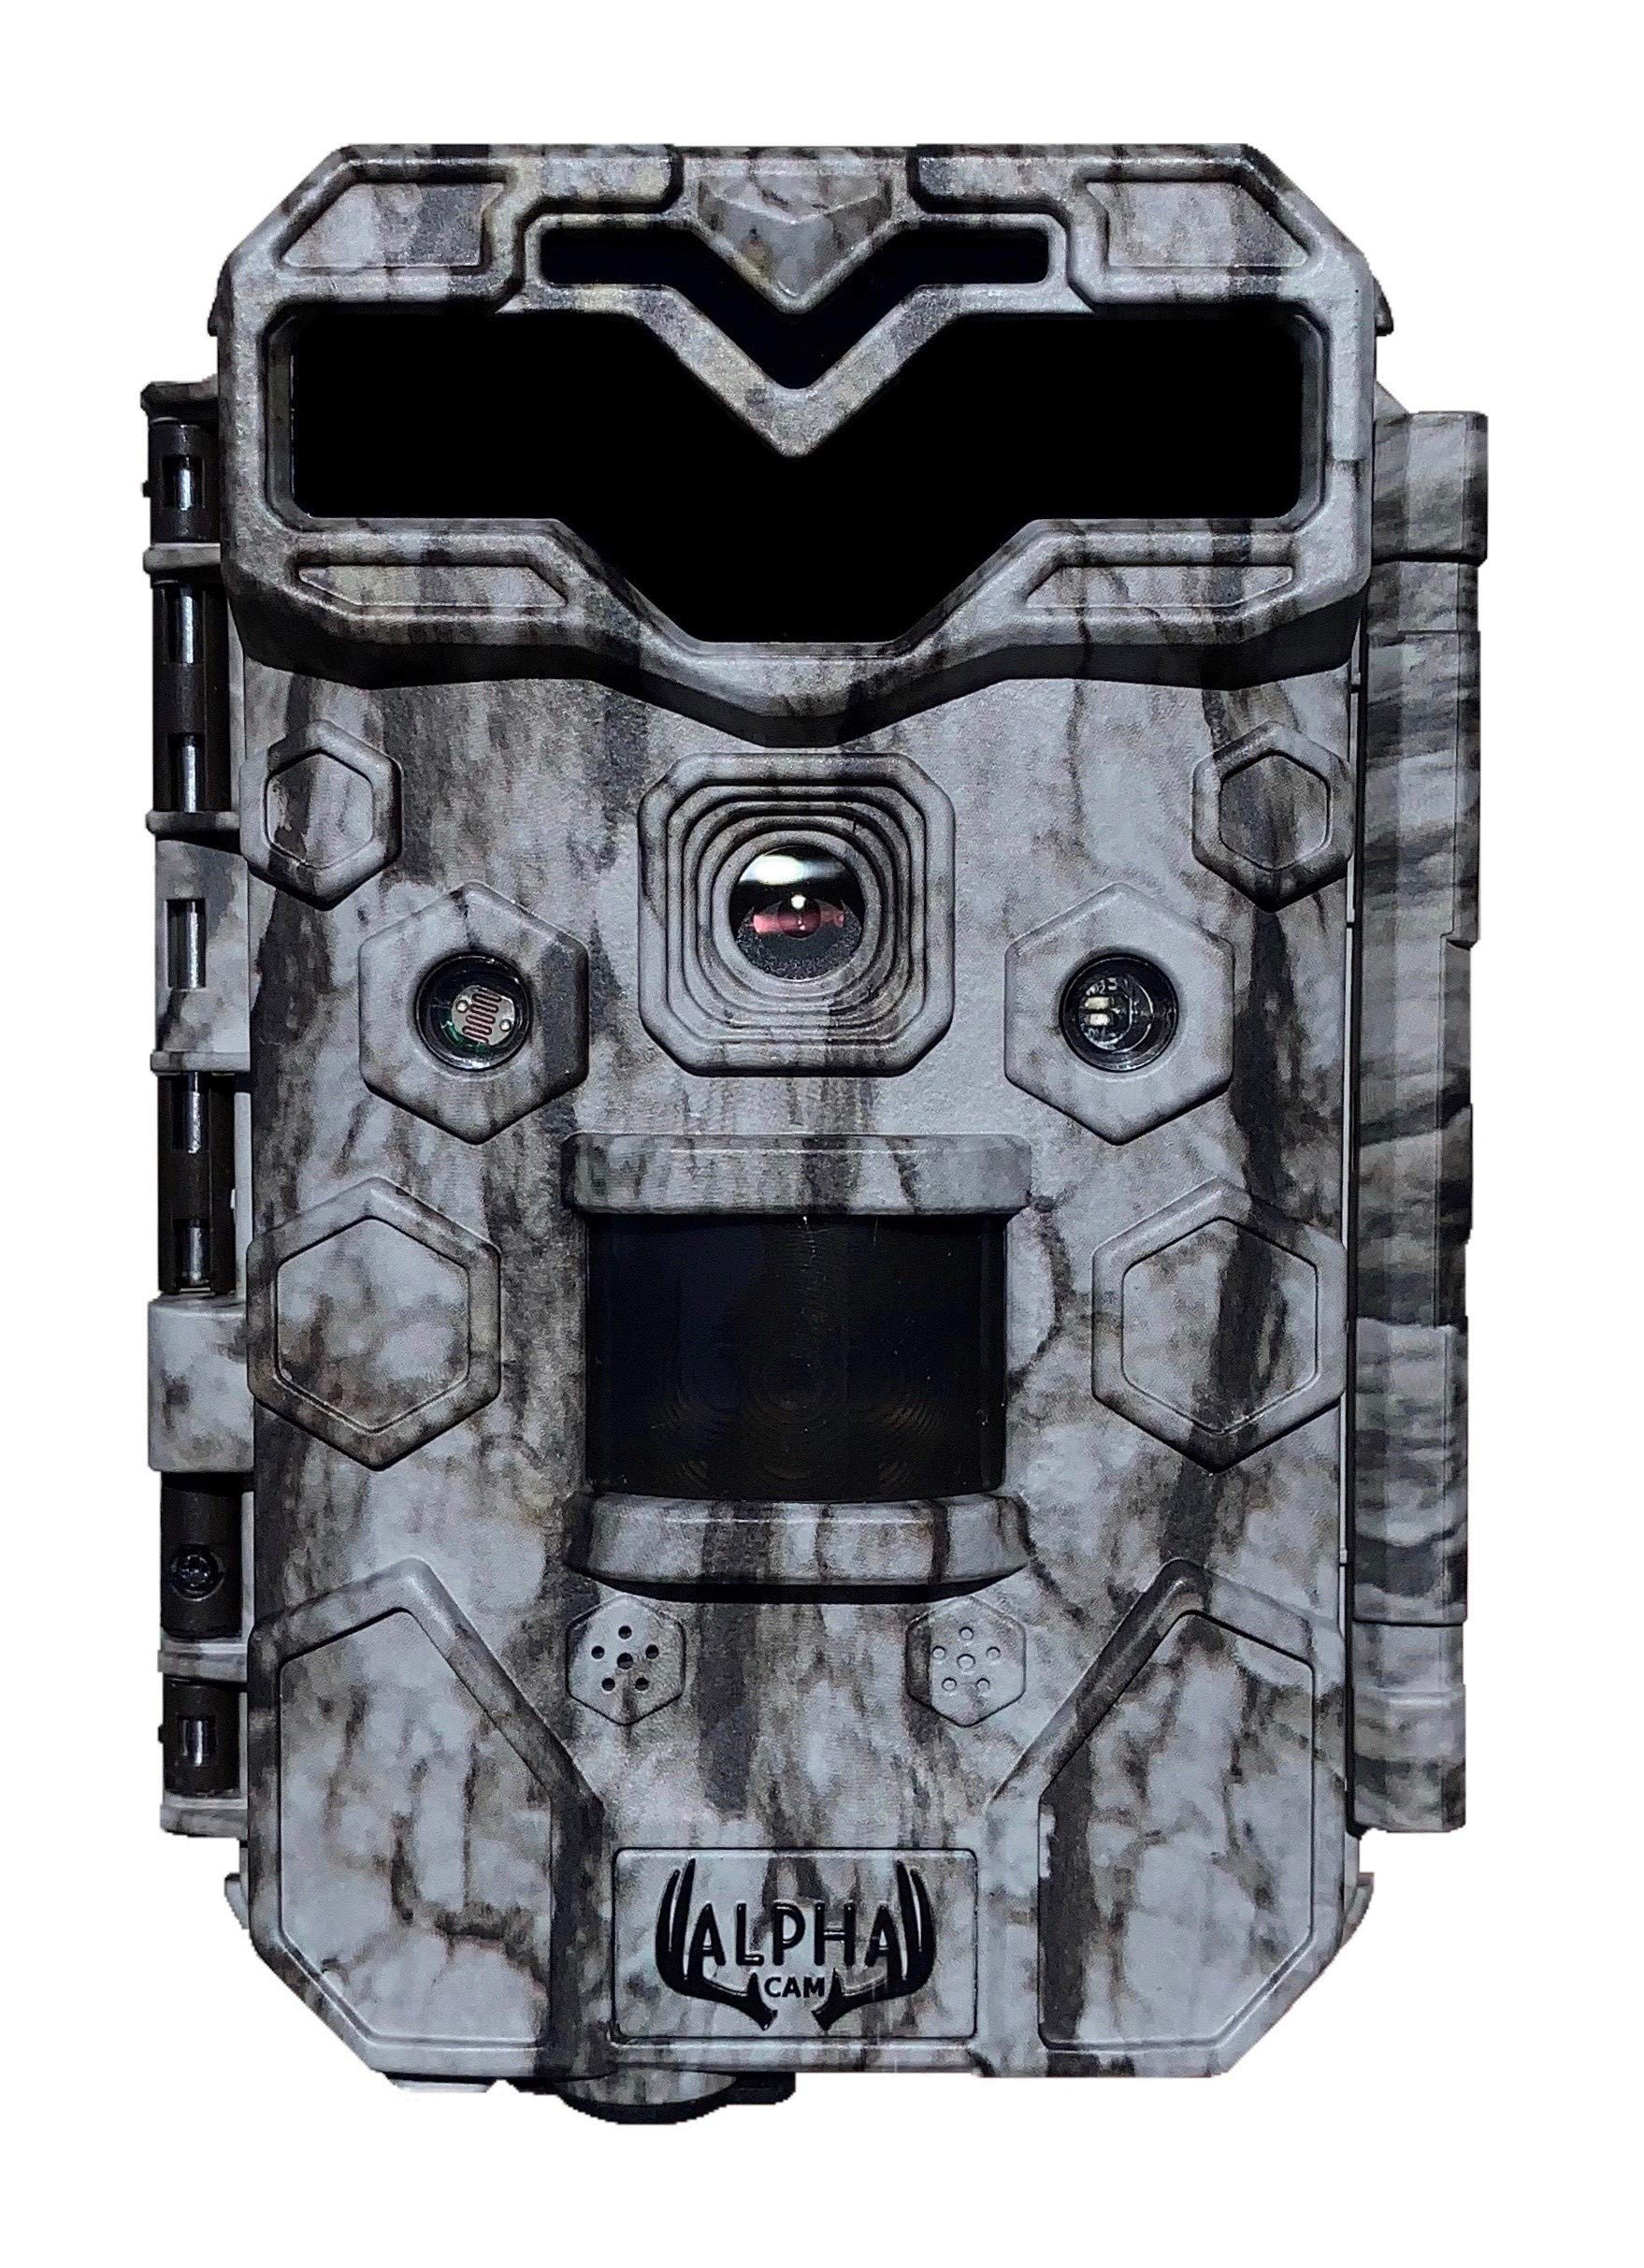 Alpha Cam Premium Hunting Trail Camera 30MP 1080p H.264 30fps IP67 Waterproof Scouting Cam with Ultra Fast Trigger Speed and Recovery Rate HD Long Range IR Night Vision 2.4″ LCD